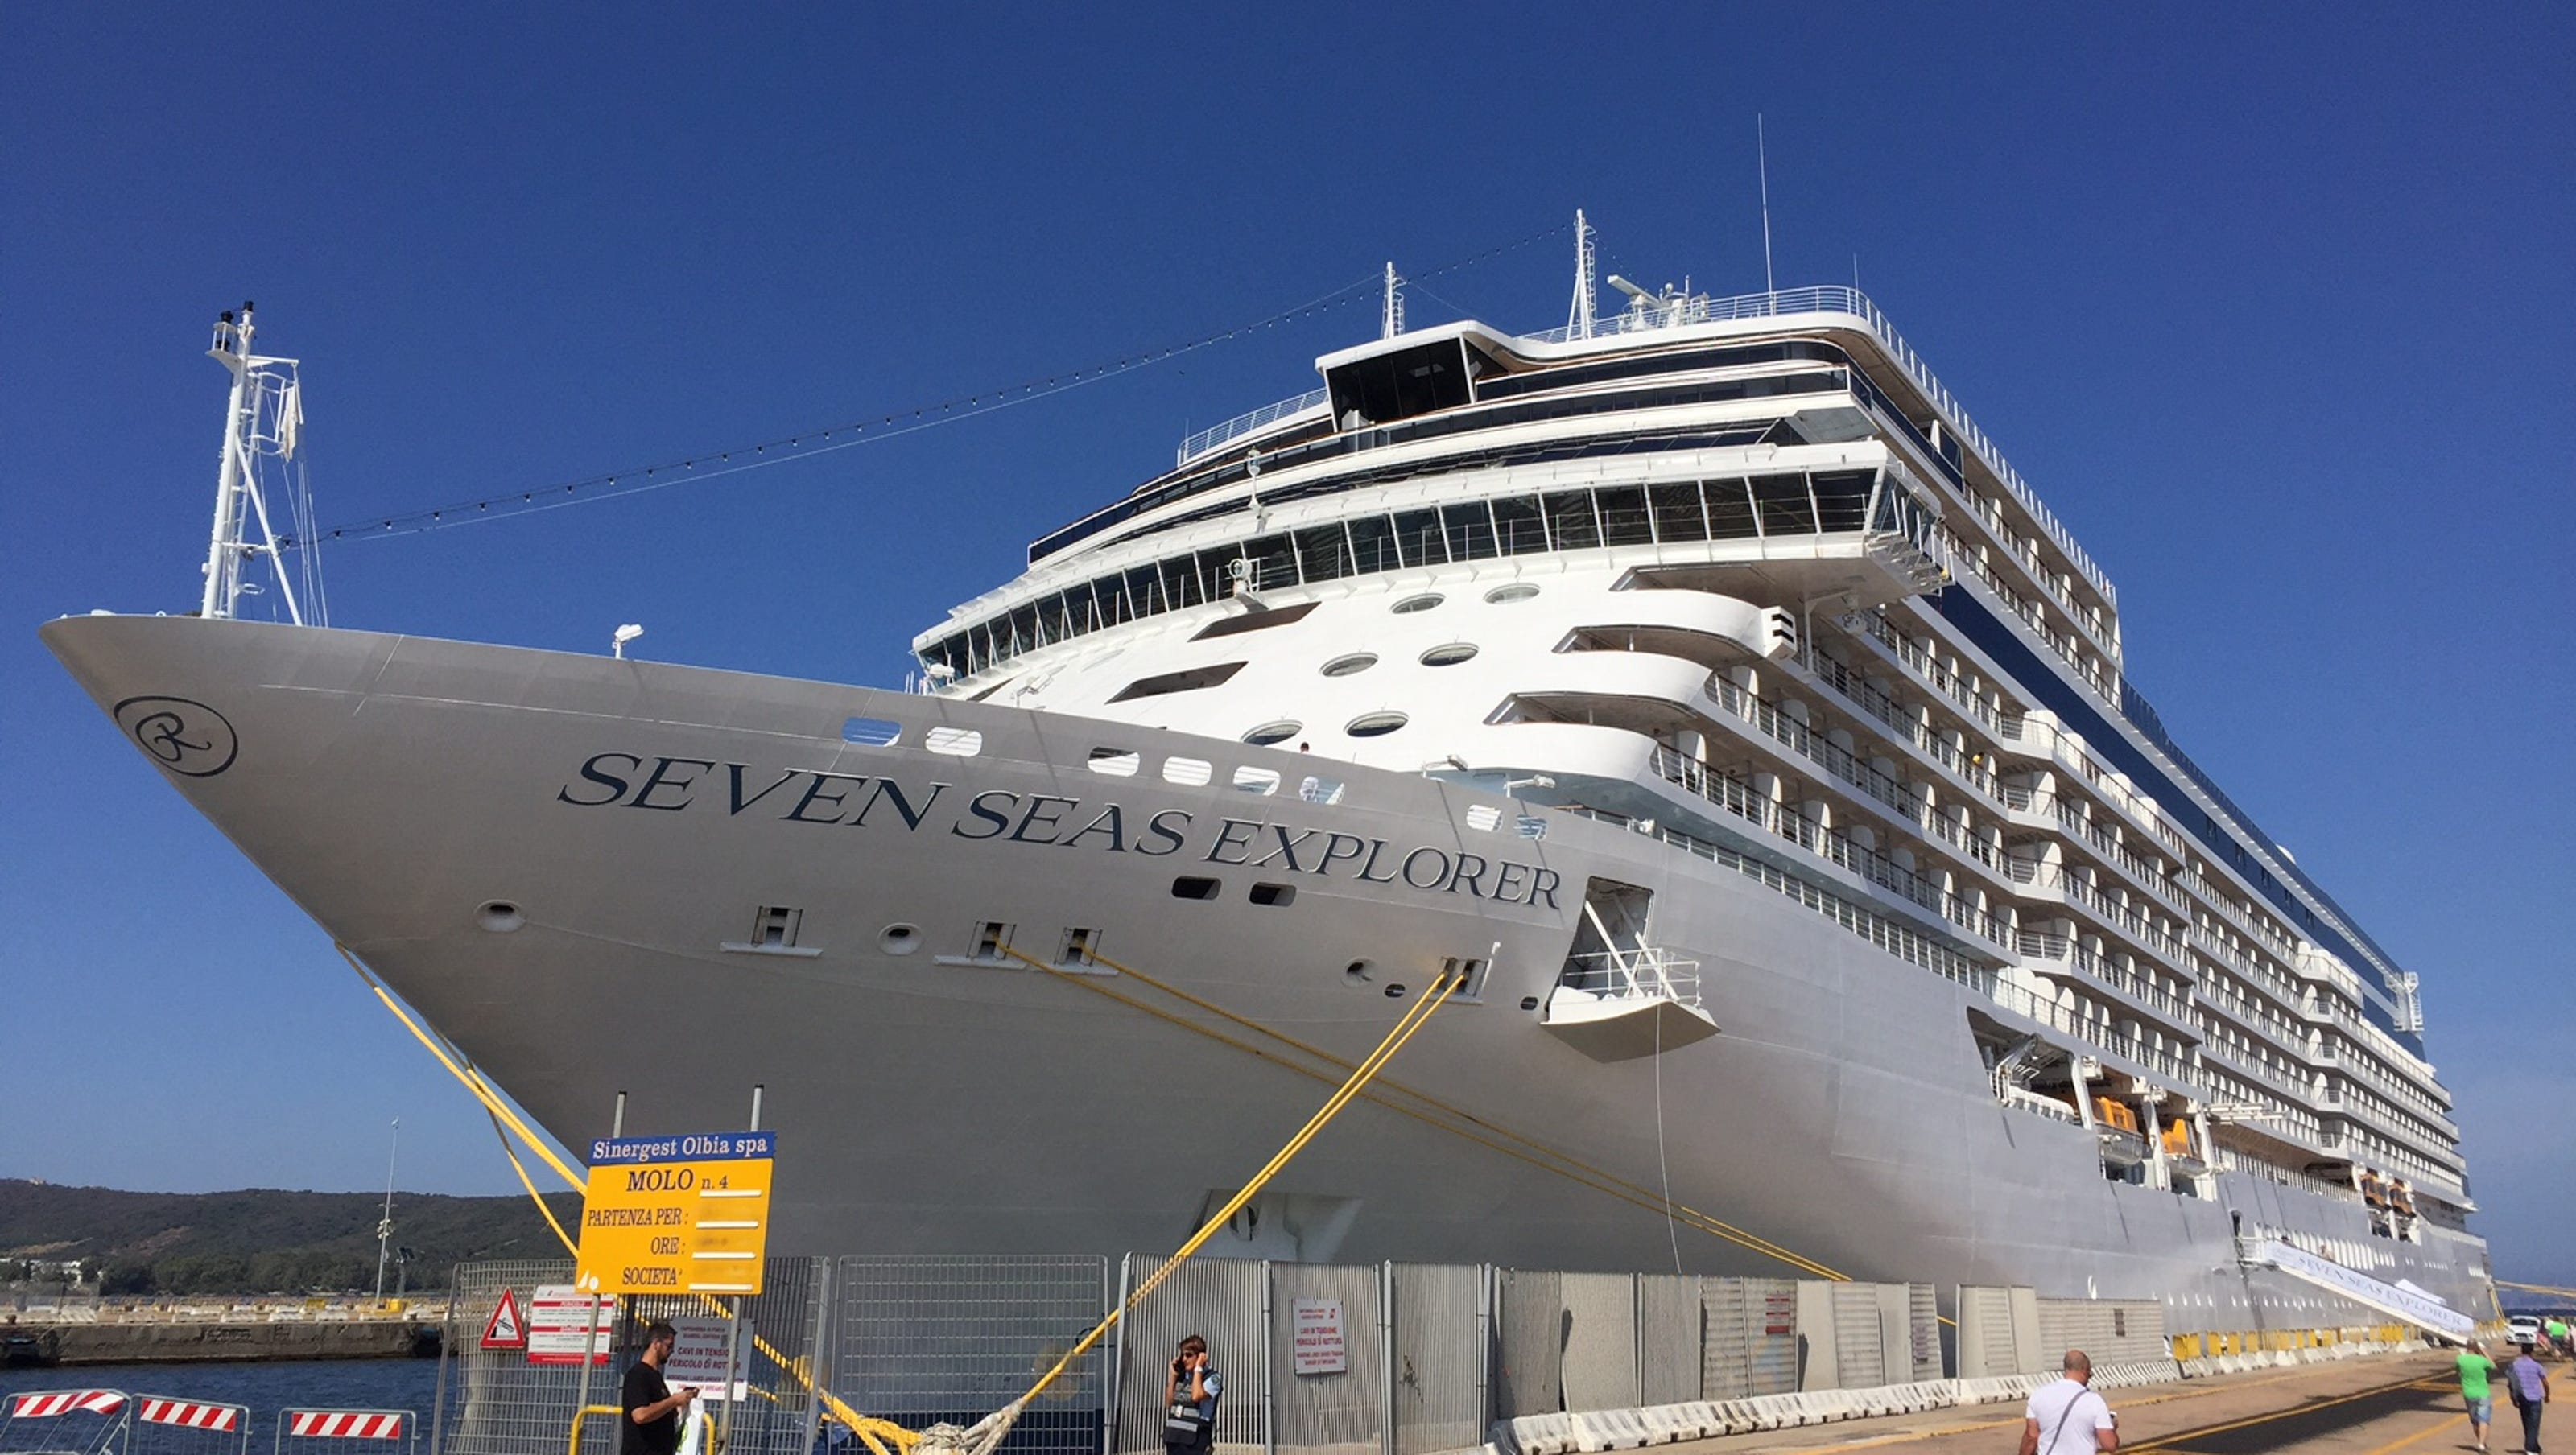 New Regent Seven Seas Cruises itinerary takes in Europe, Asia and Australia (usatoday.com)